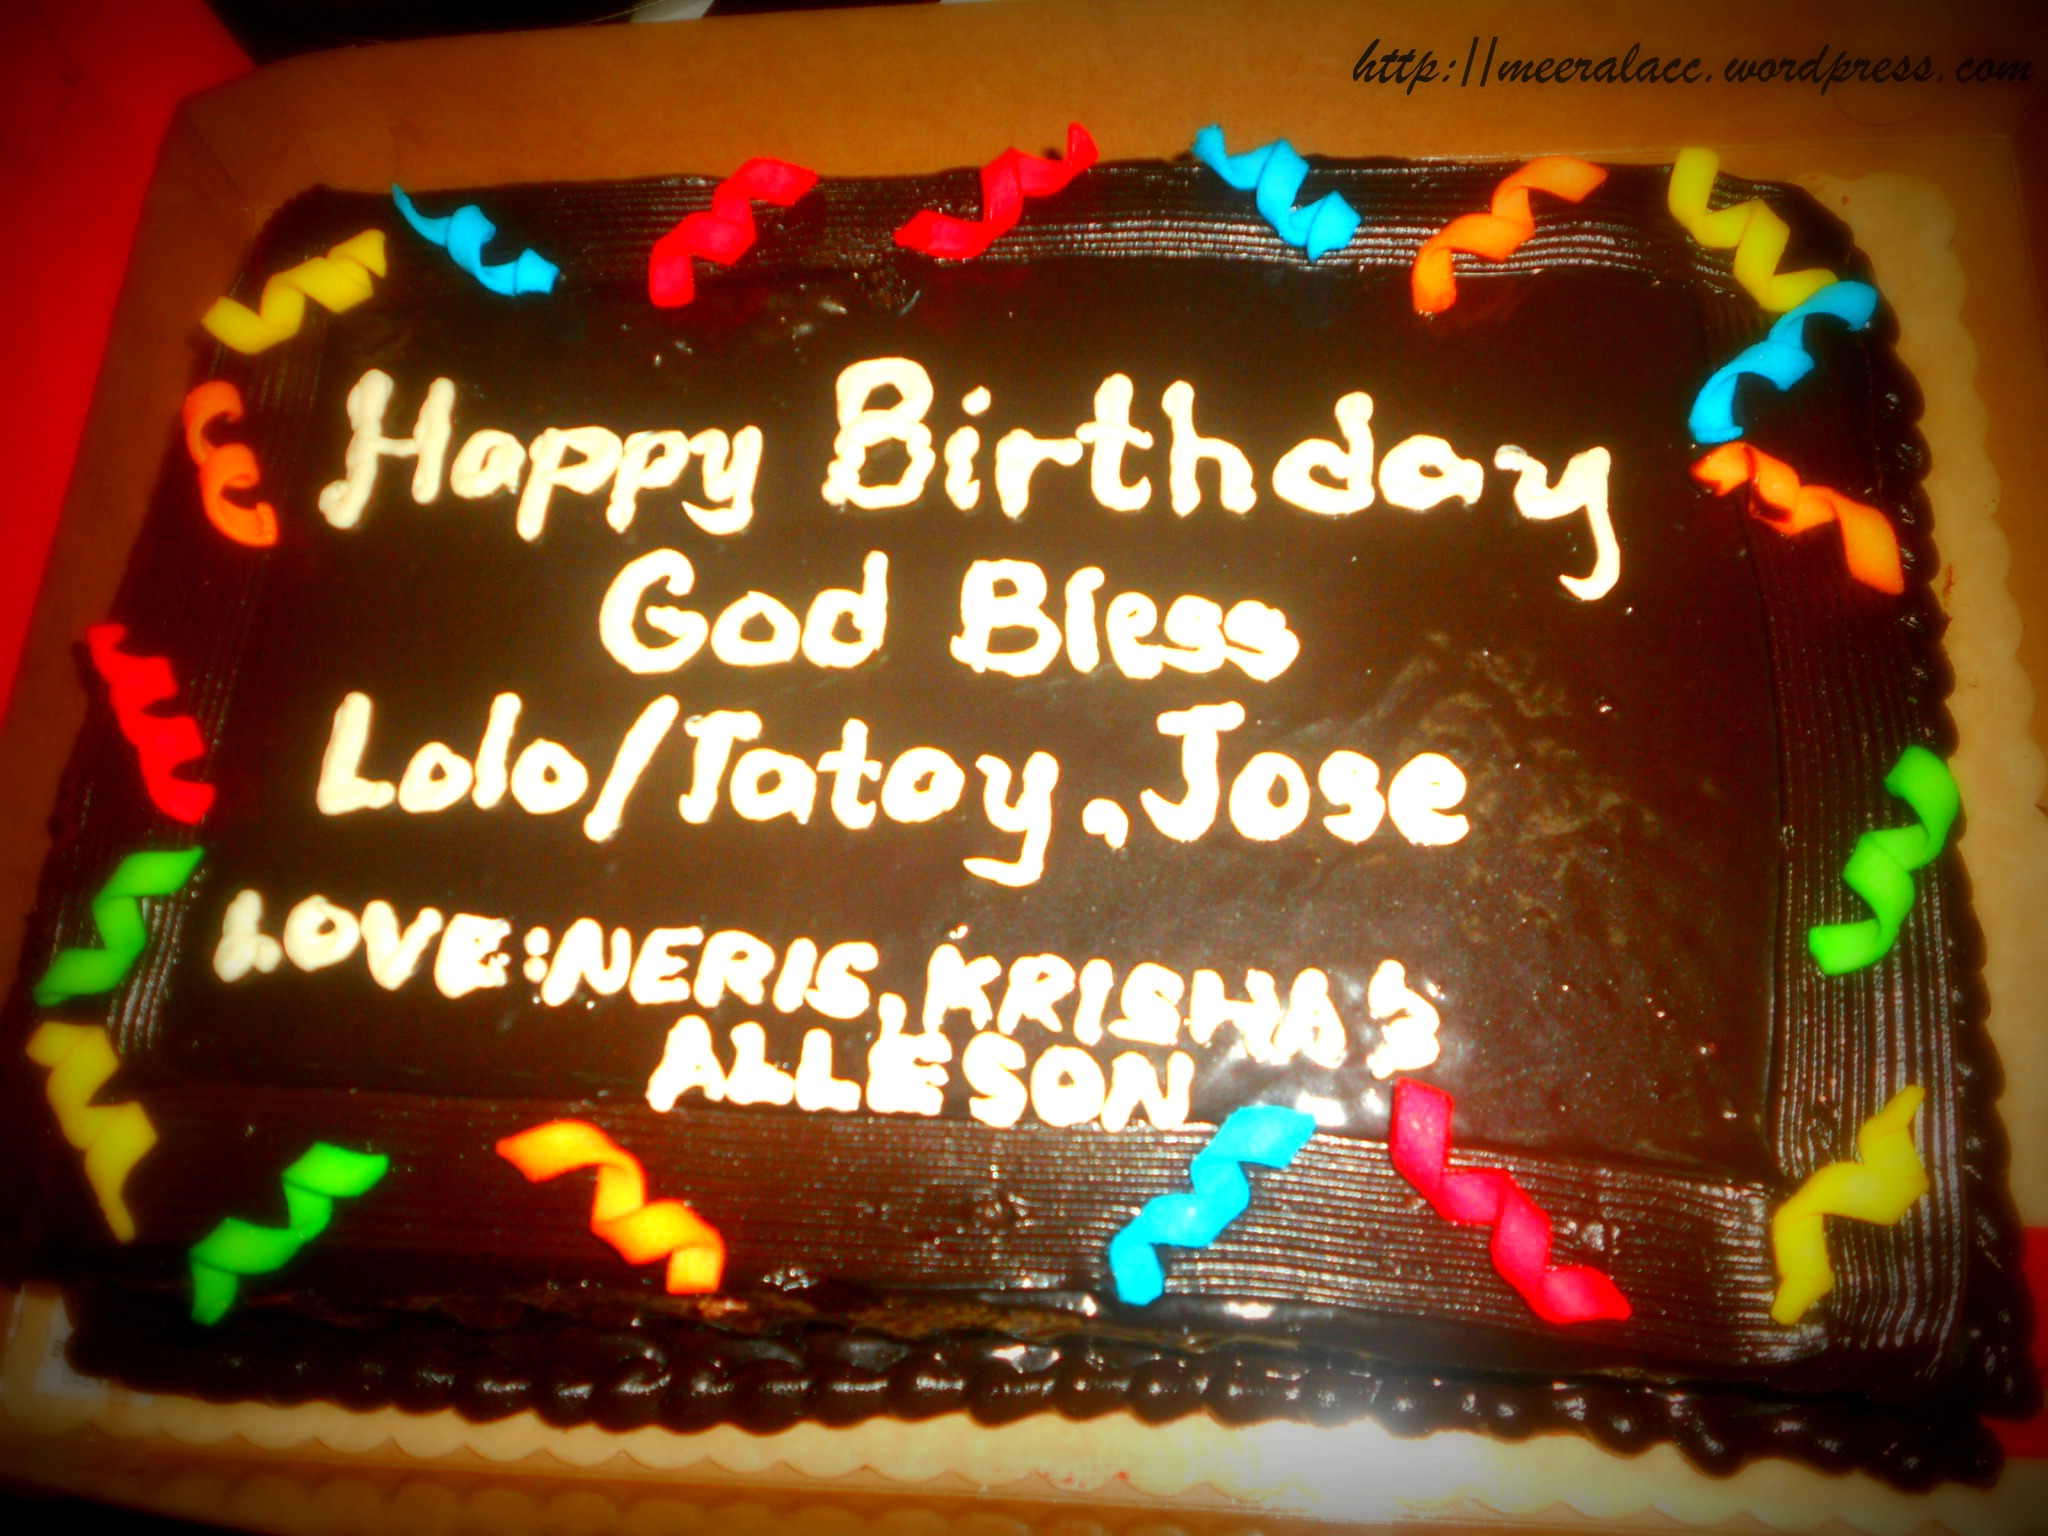 Another Year Added Hbd Lolo Jose Sentiments